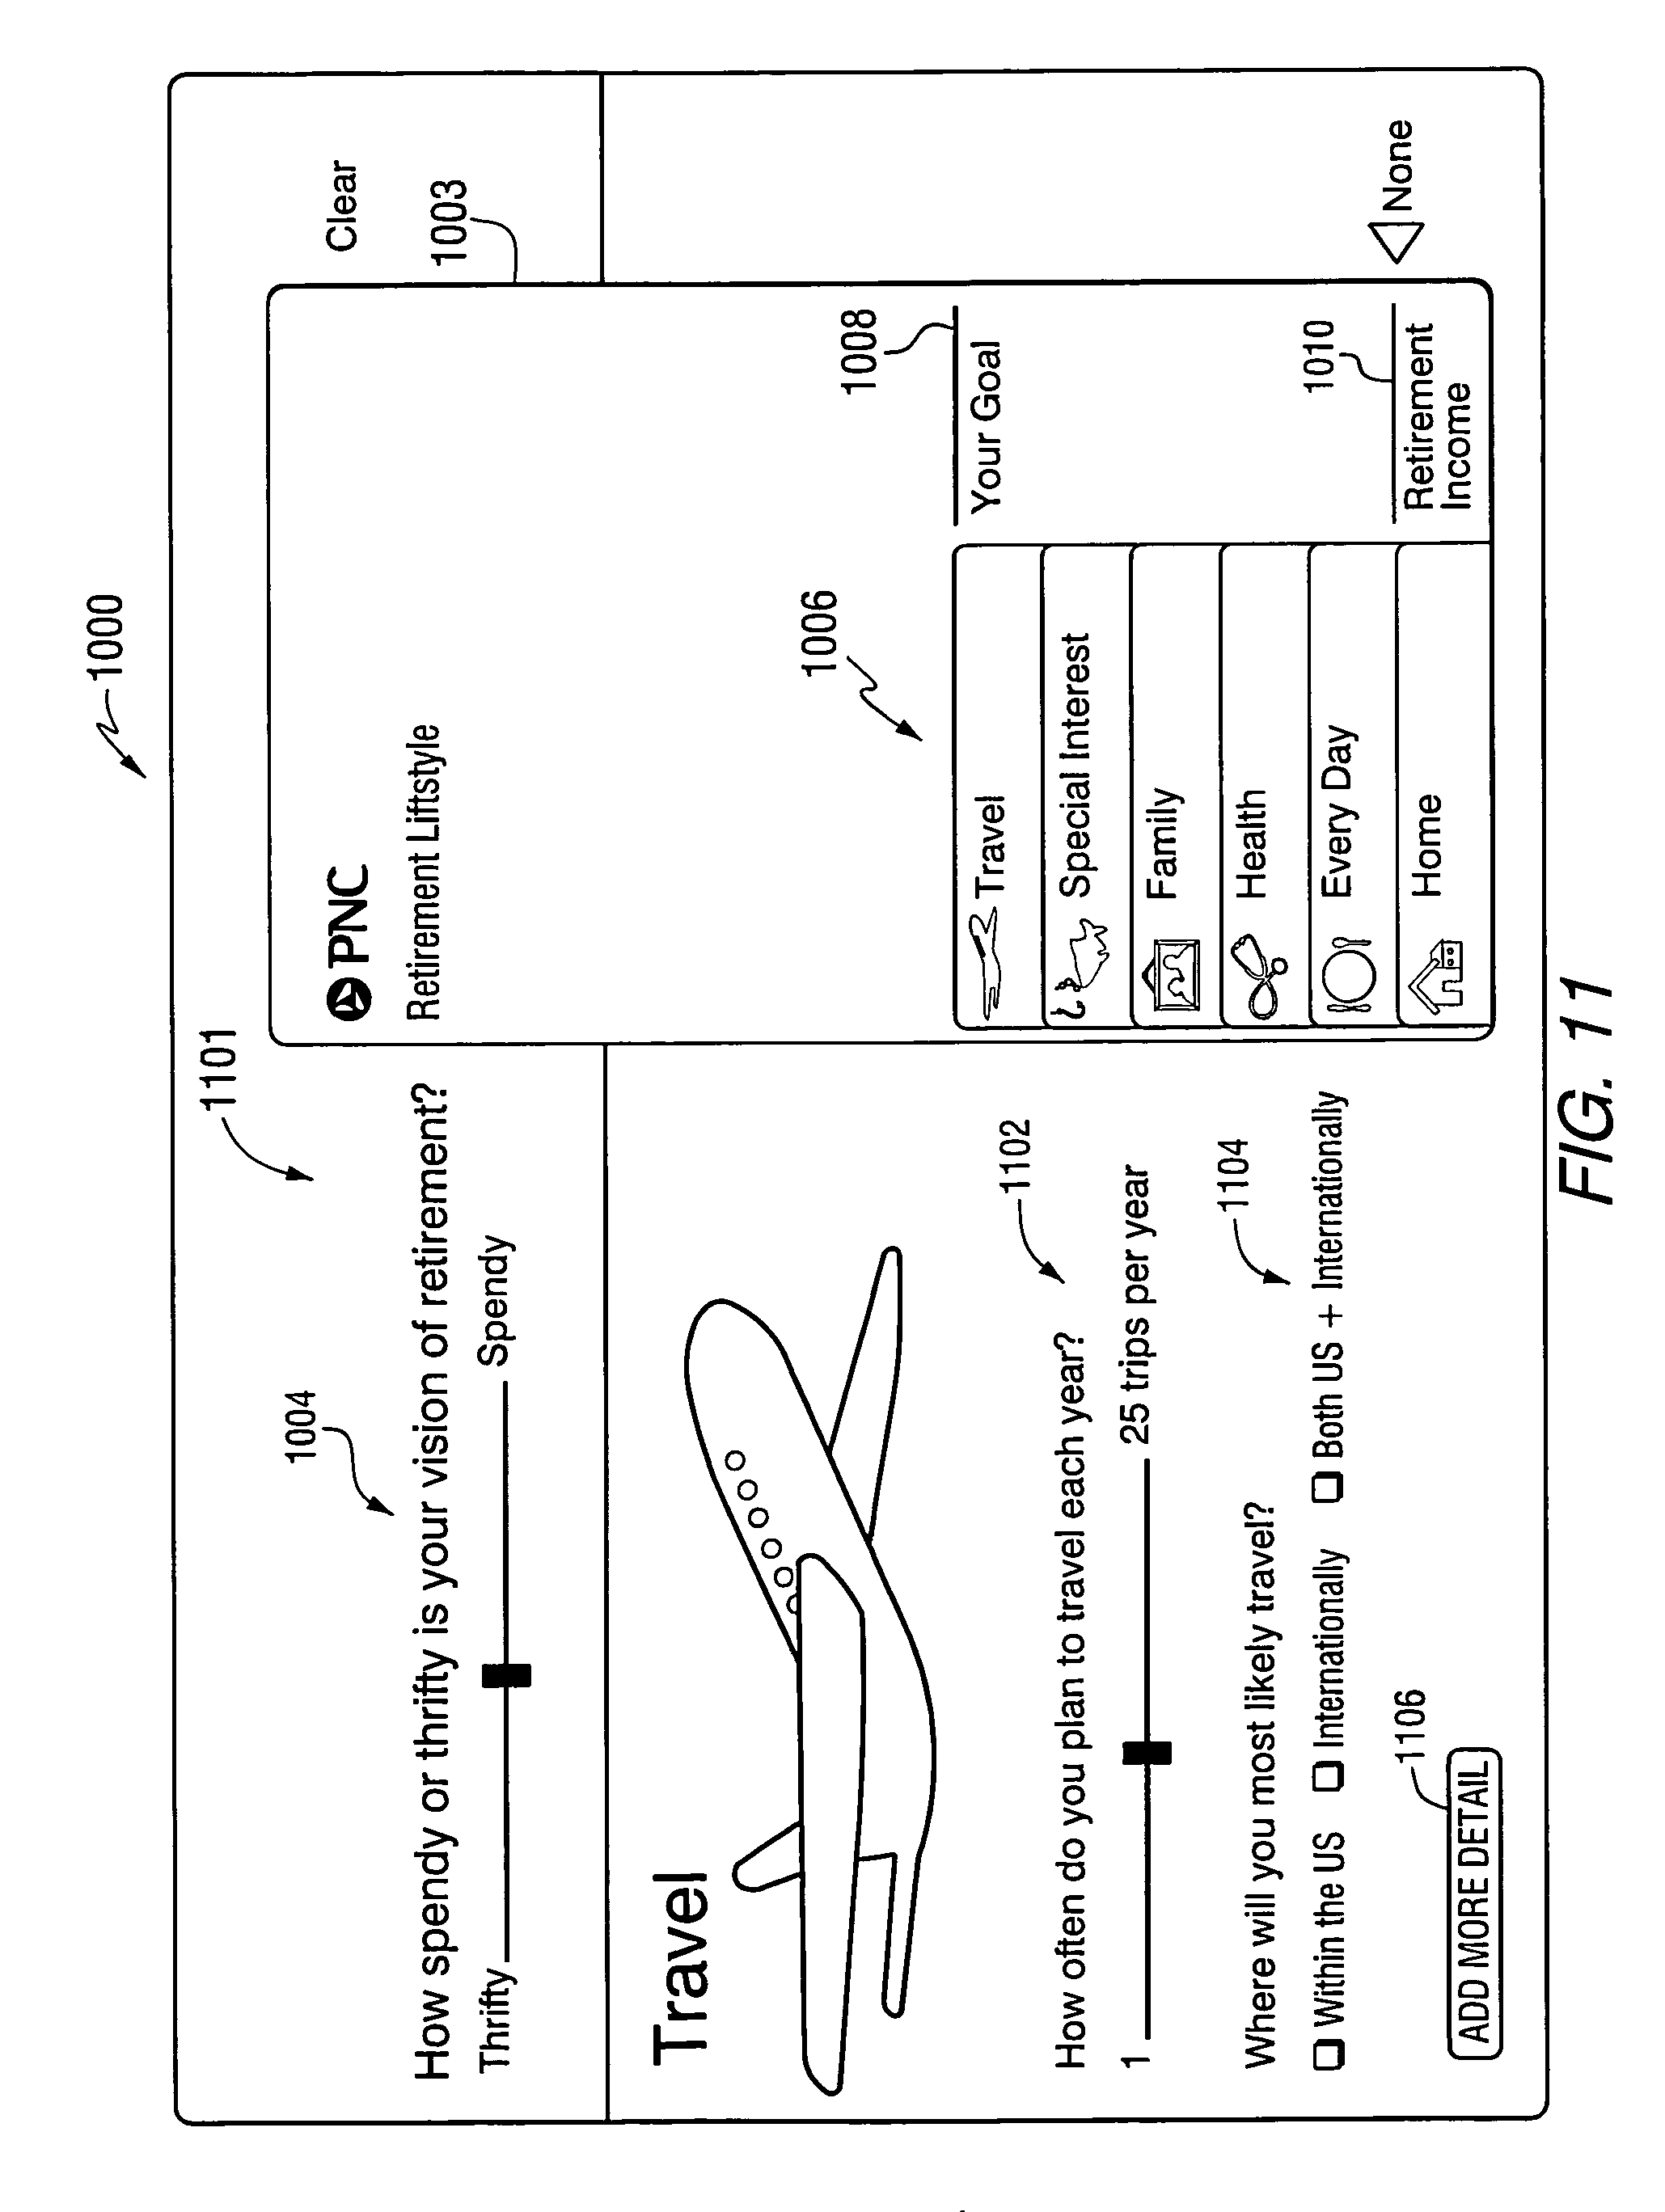 Patent US8417614 - Investor personality tool - Google Patents